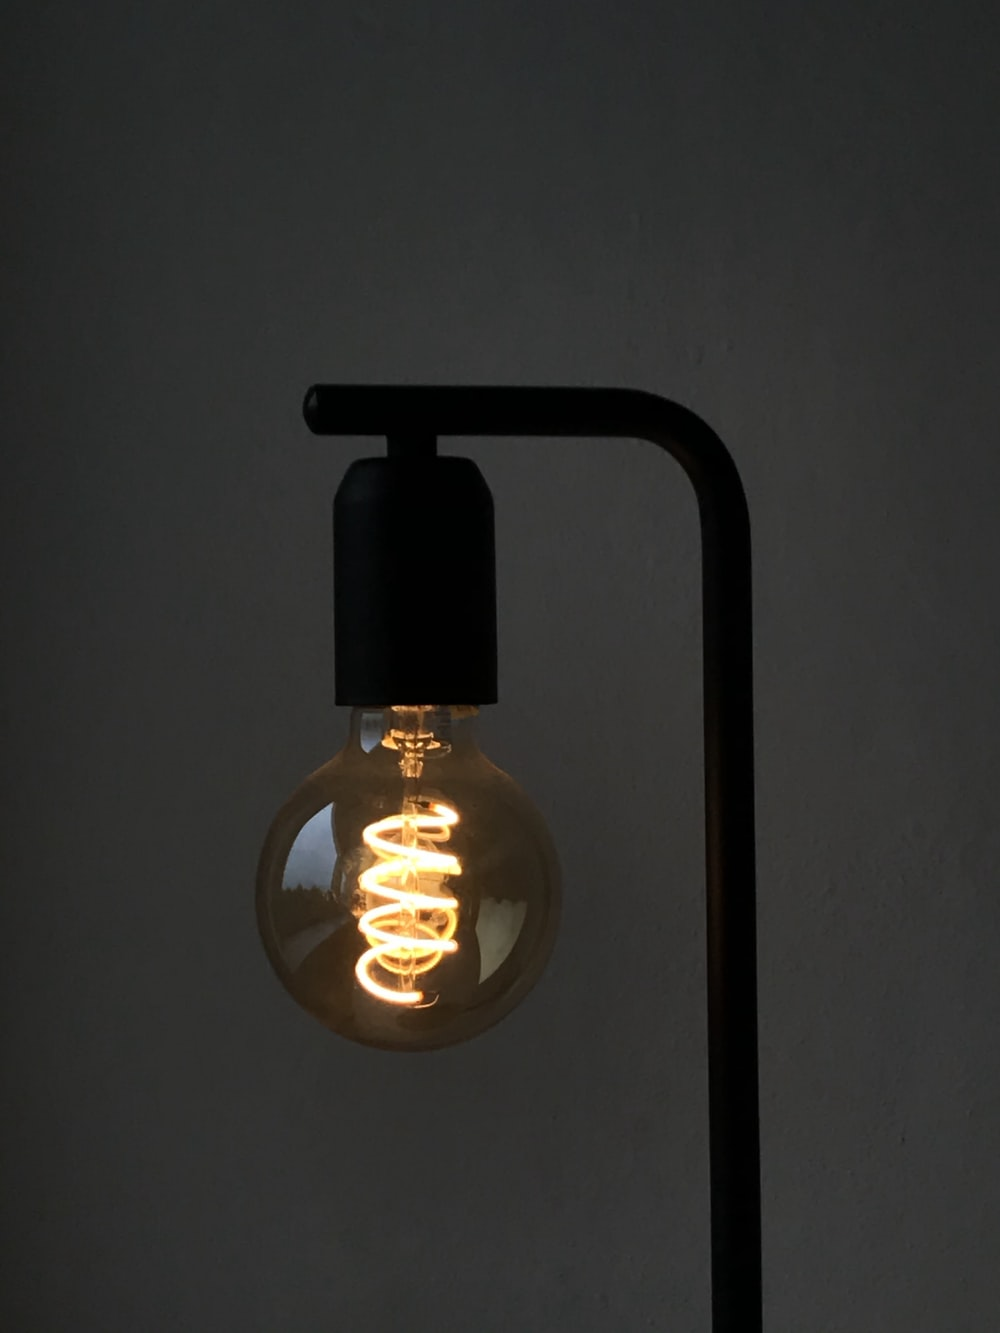 clear glass light bulb turned on in room